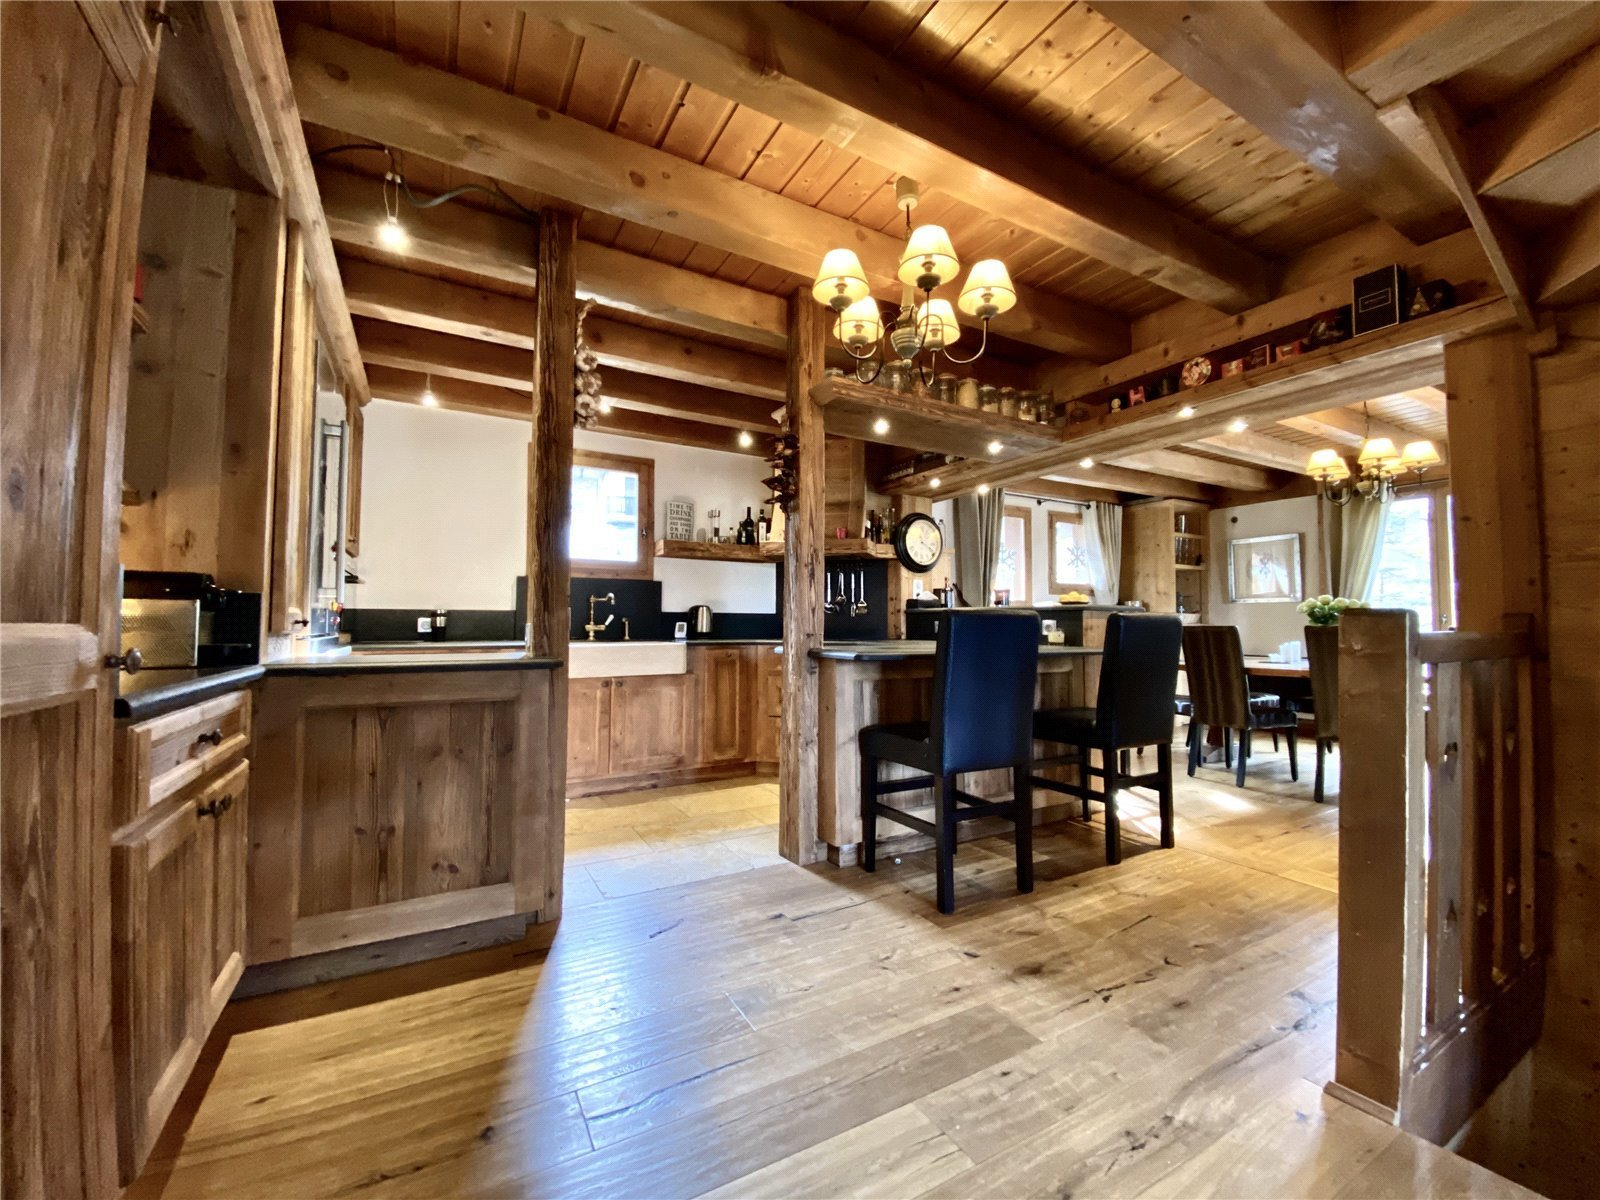 Buying Villa Courchevel 5 bedroom chalet with beautiful views in Courchevel 1650, ideally placed for the ski slopes.